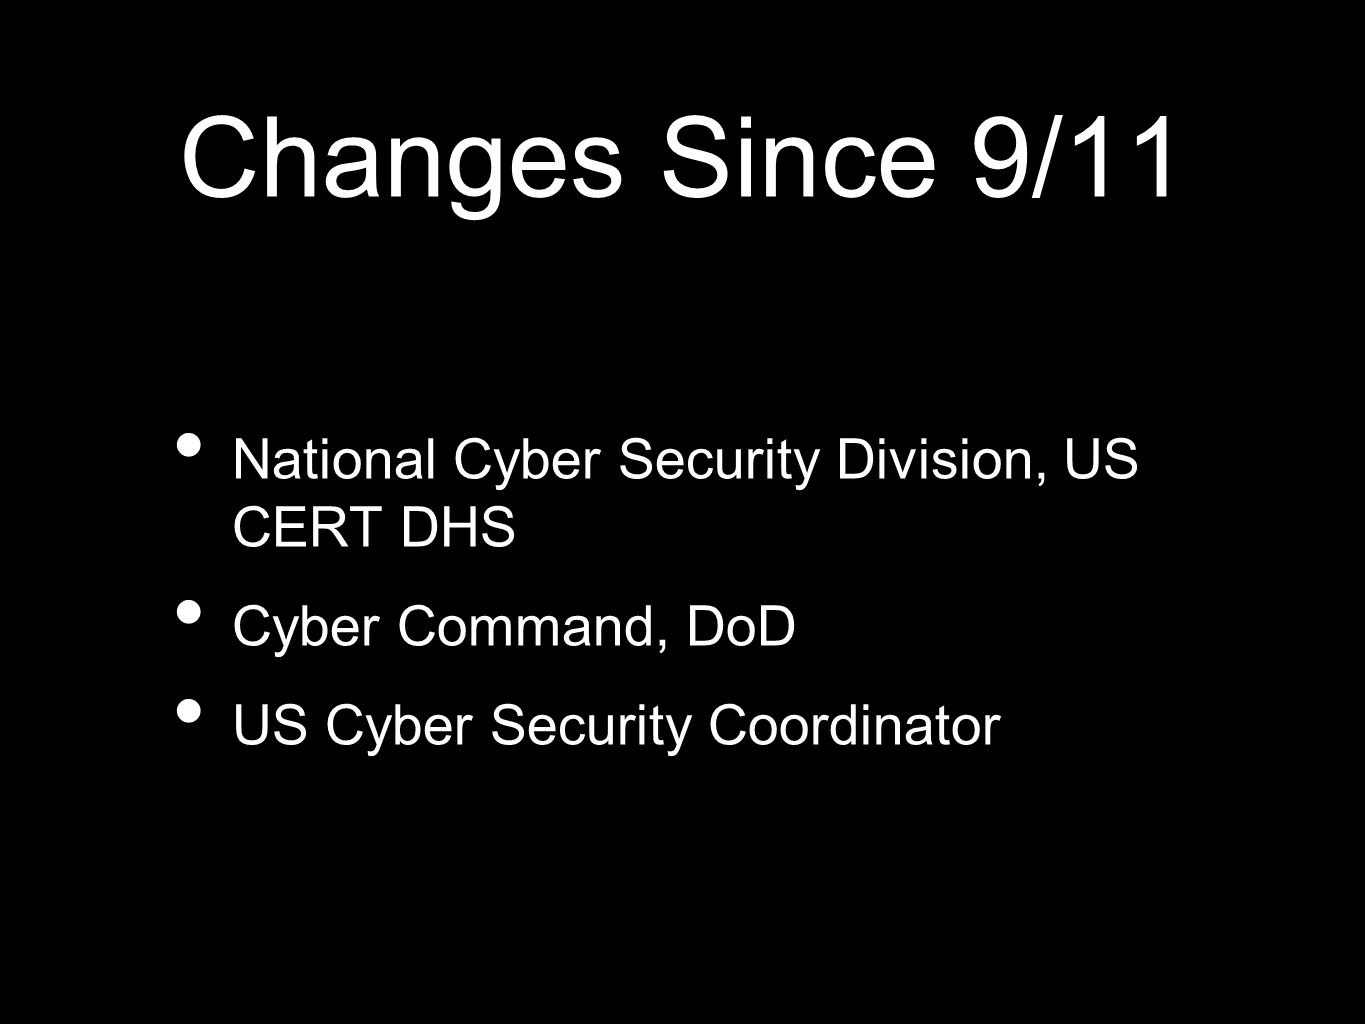 personal changes since 9 11 How federal security background checks have changed since 9/11 since september 11, 2001, the federal government has become involved in many aspects of security that were previously handled by private companies.